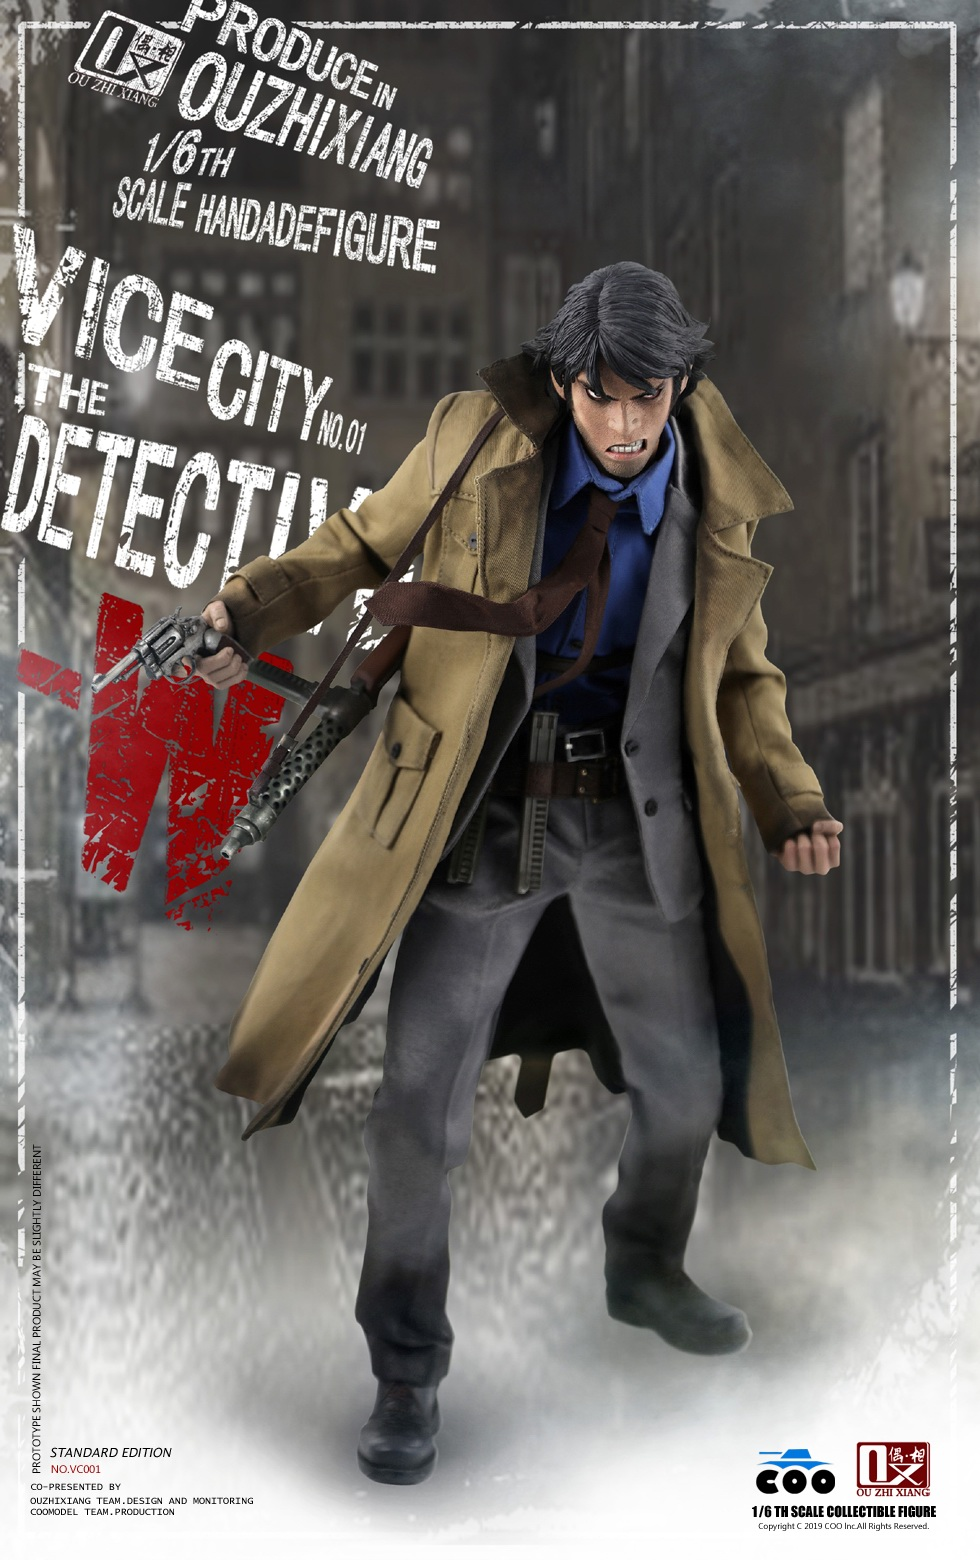 DetectiveW - NEW PRODUCT: COOMODEL X Even: 1/6 Vice City - Detective W [Standard Edition & Collector's Edition] - Four-headed configuration 20262110